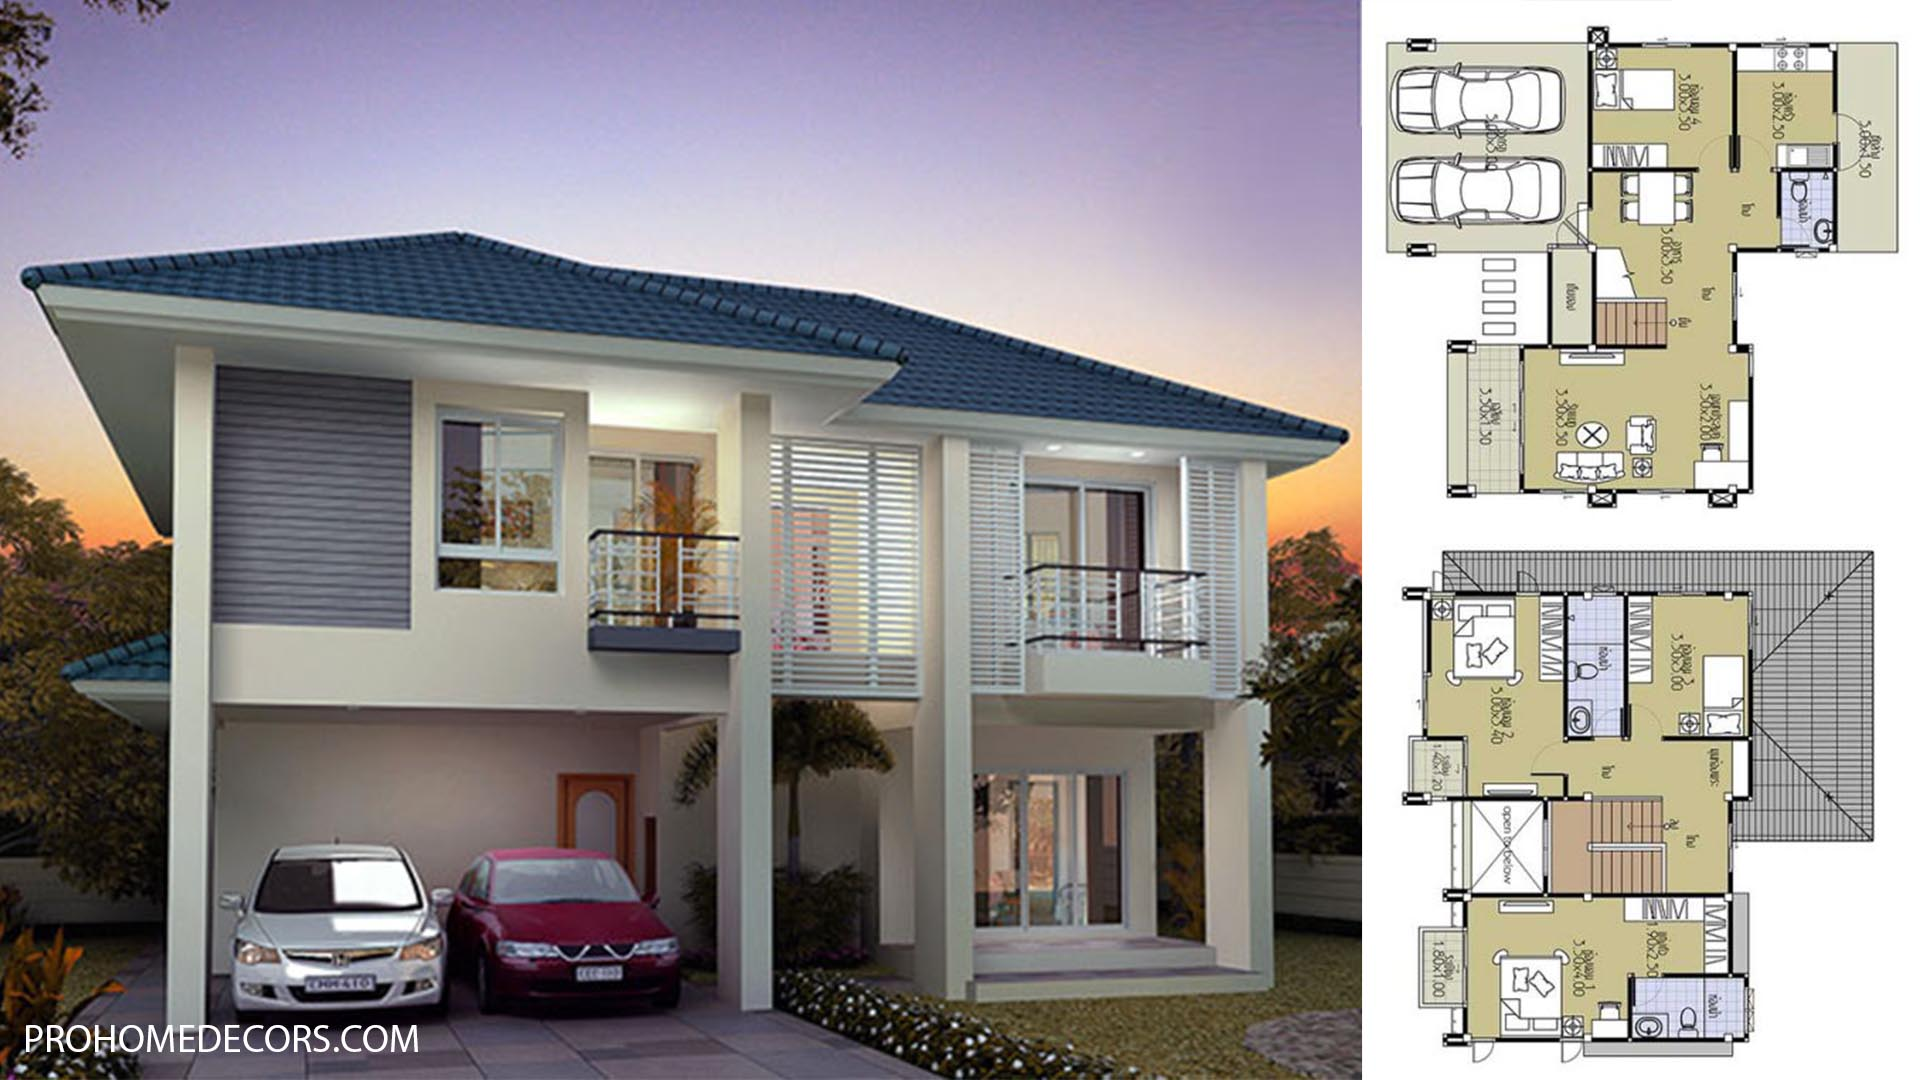 House Plans 11×10 with 4 Beds